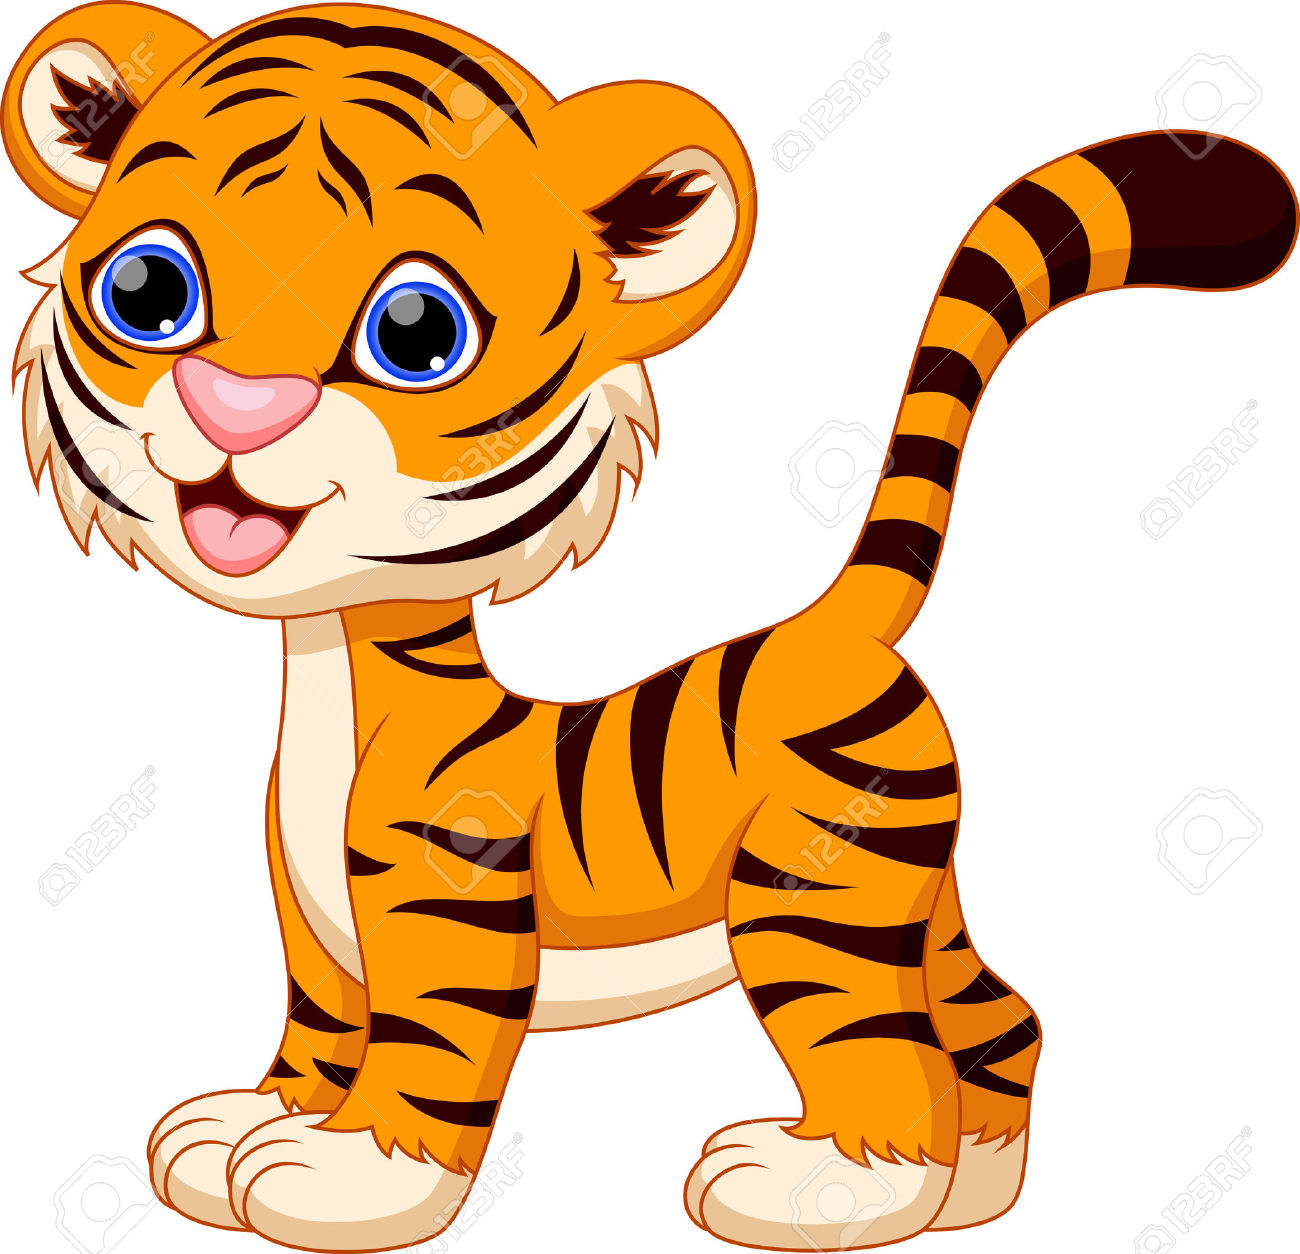 tiger clipart at getdrawings com free for personal use tiger rh getdrawings com Cute Tiger Clip Art baby tiger face clipart